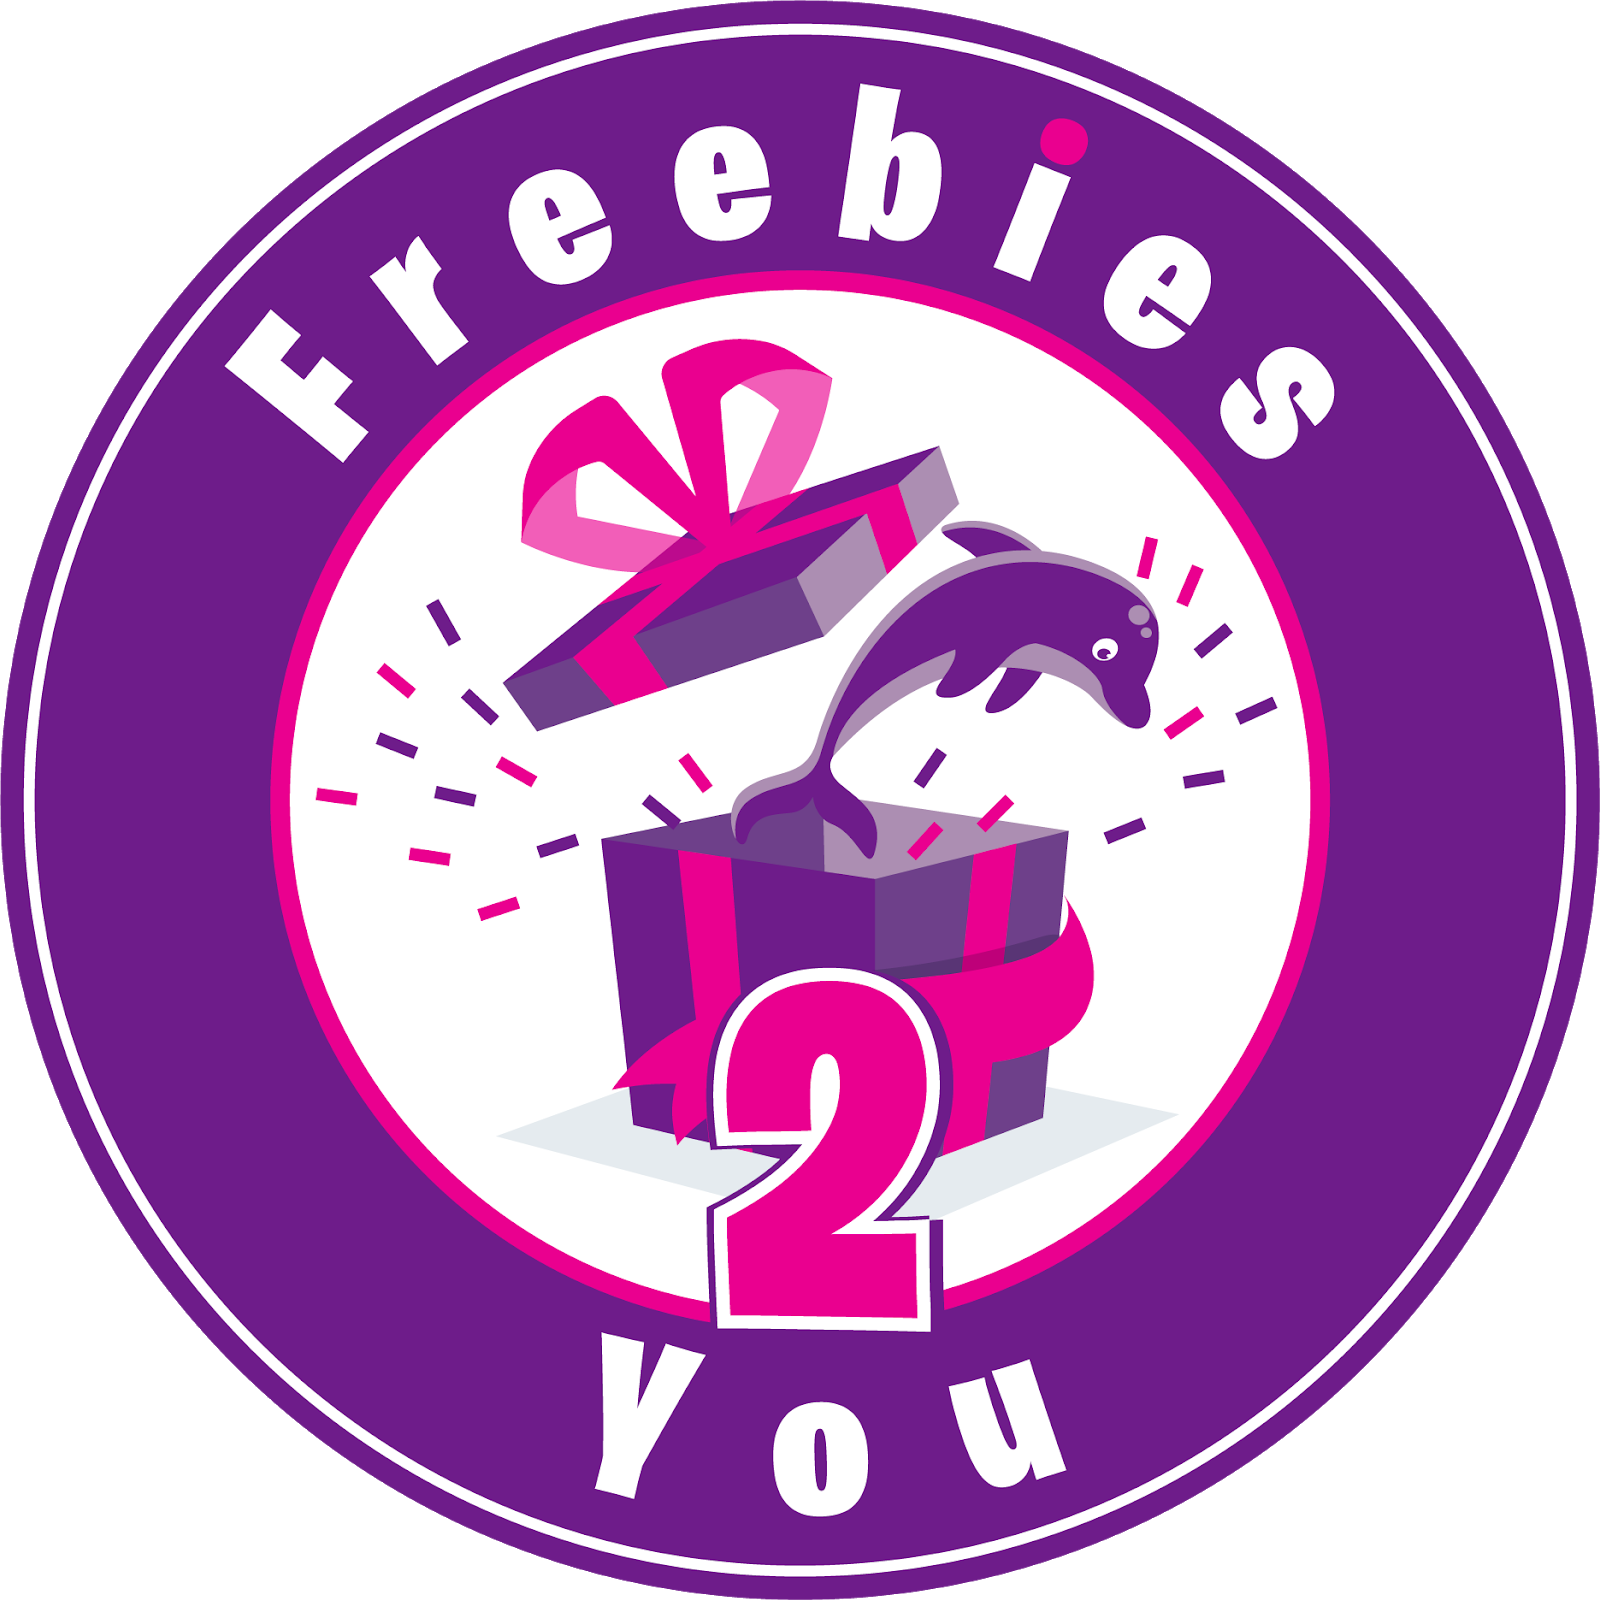 Free Sample by mail 2019 - Freebies2you.com